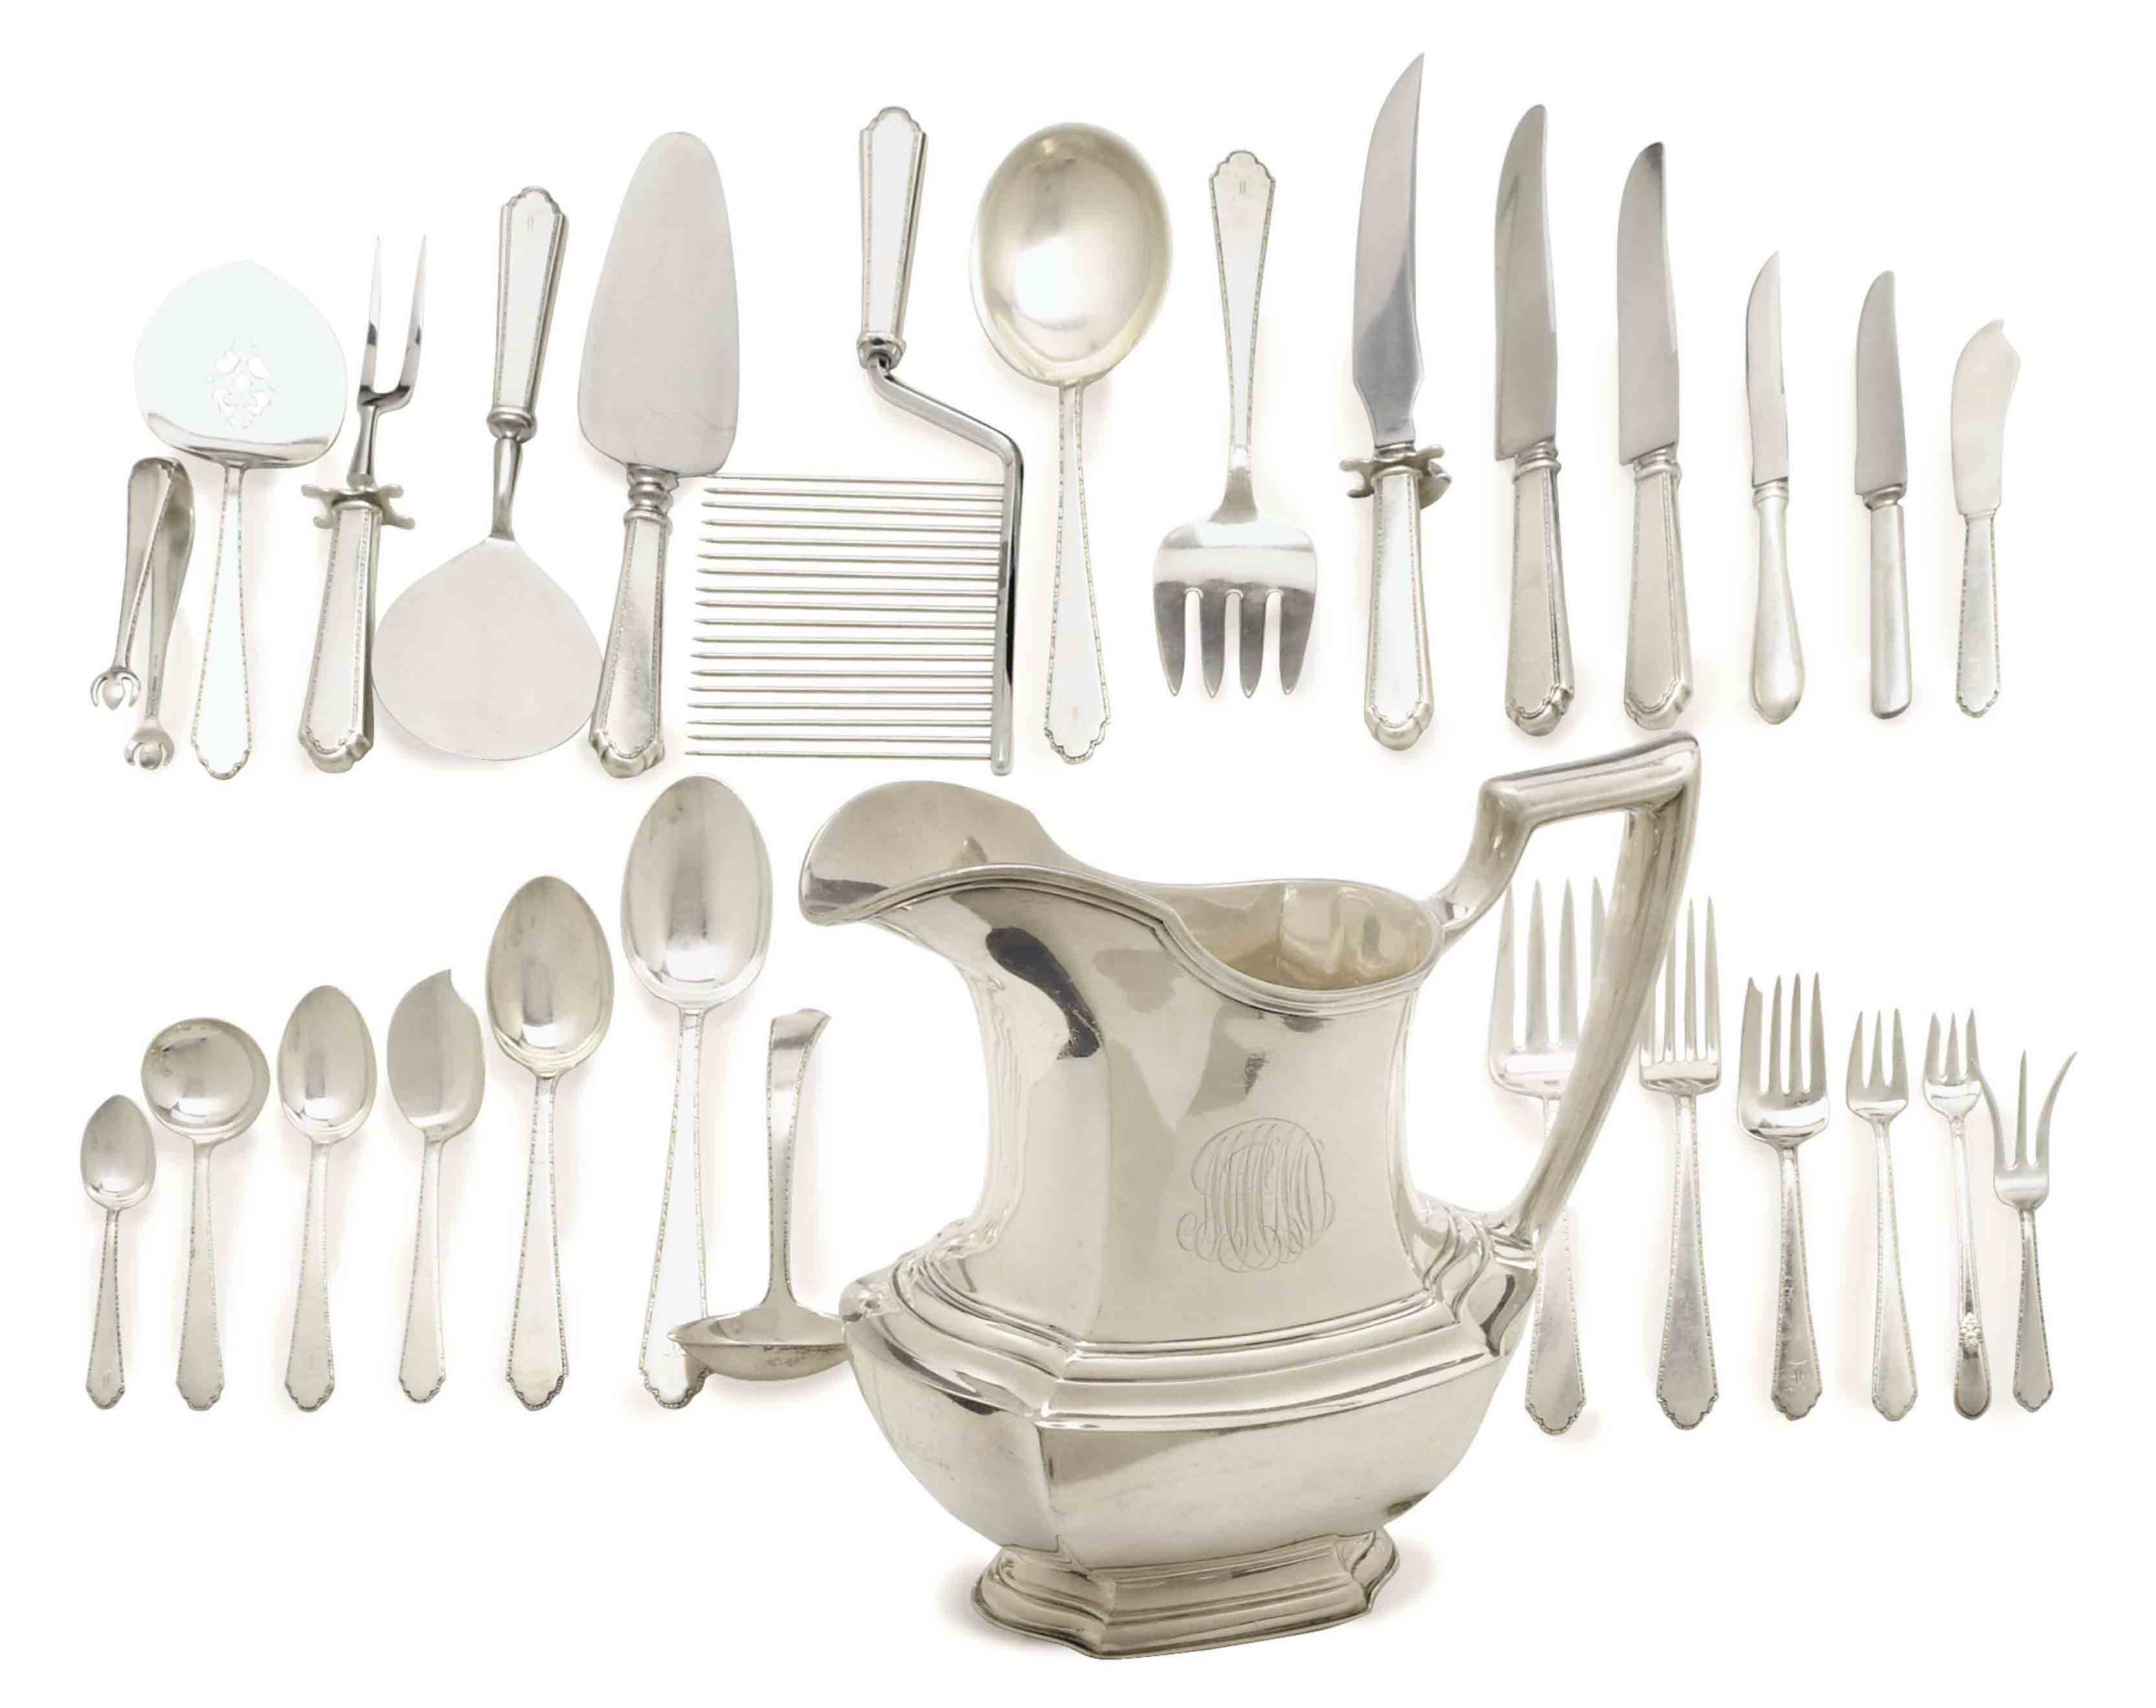 AN ASSEMBLED AMERICAN SILVER PART FLATWARE SERVICE, AND AN AMERICAN SILVER PITCHER,